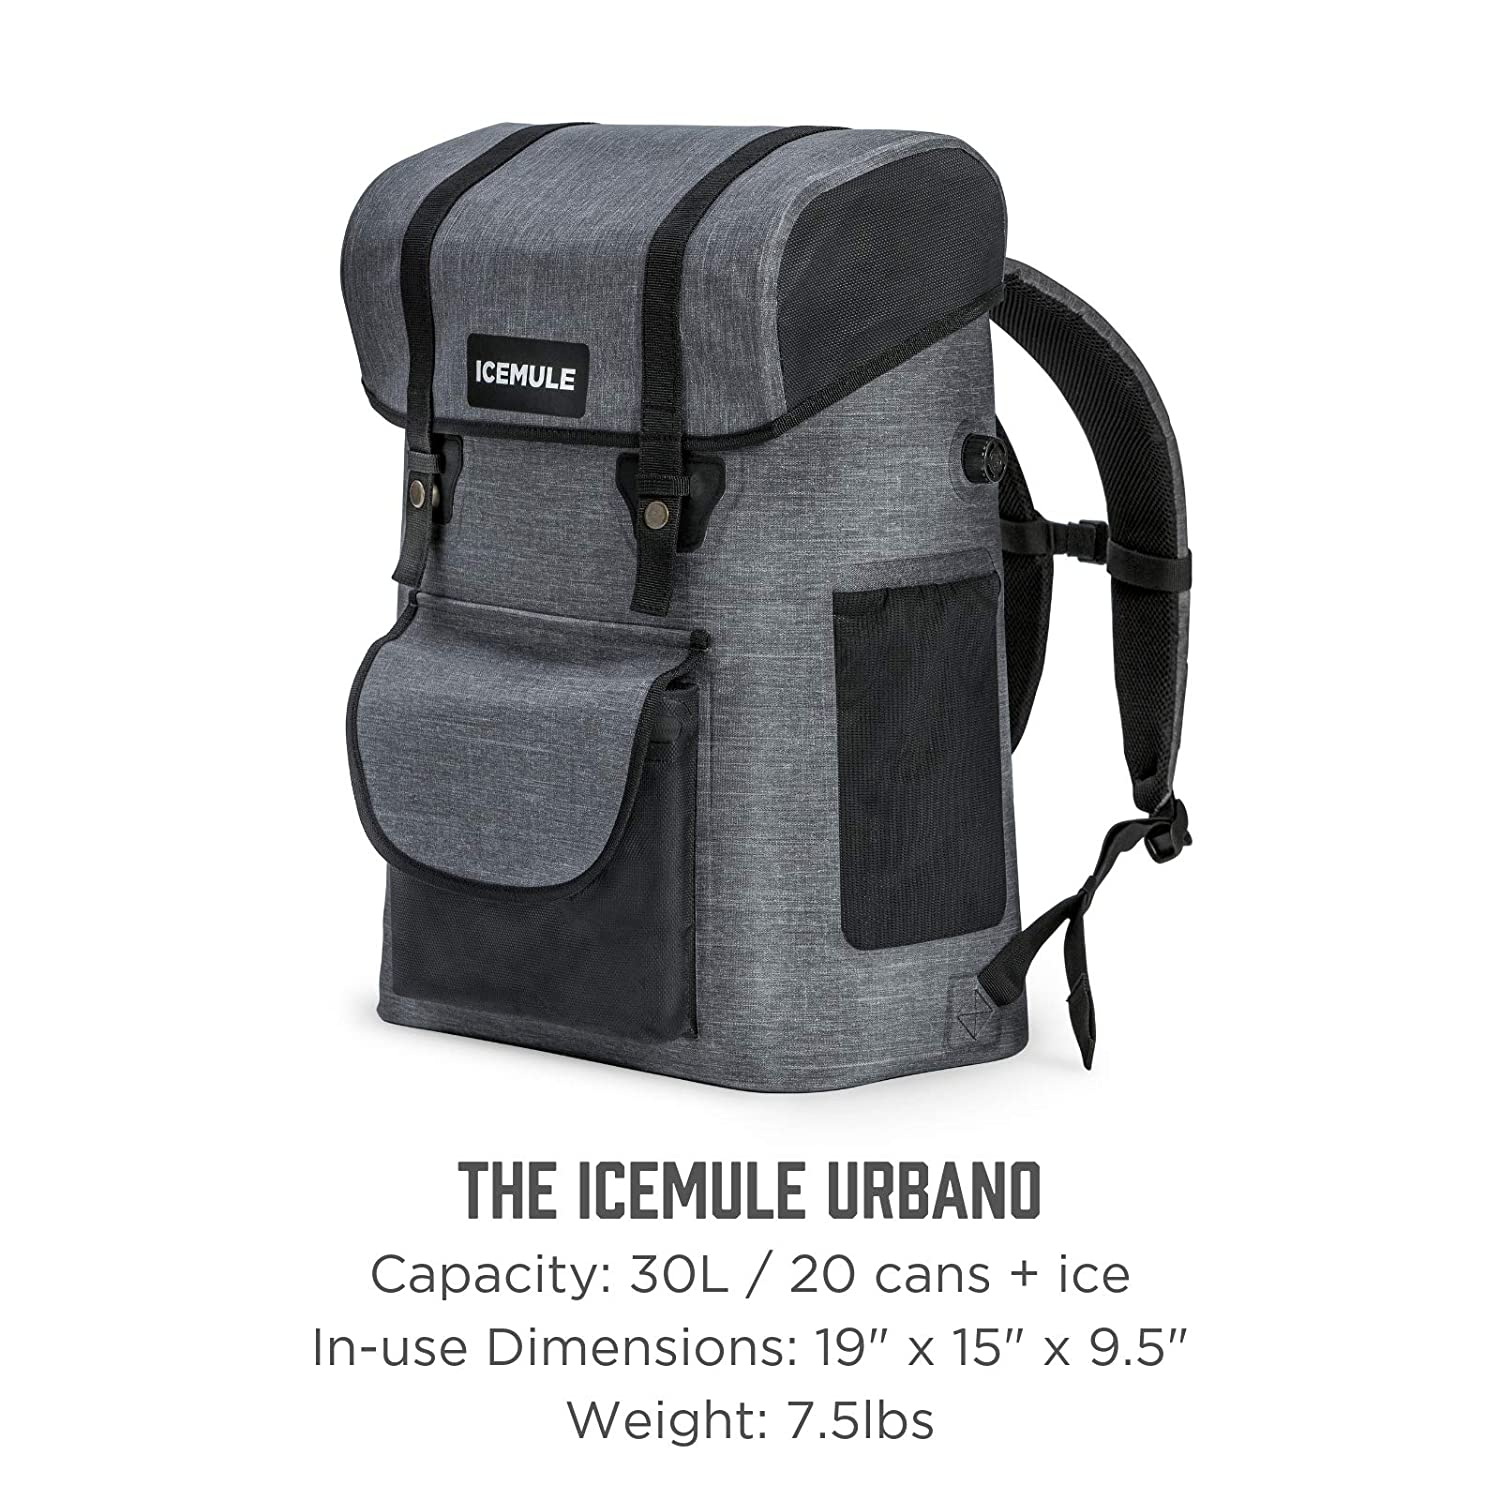 e99389ffec2 IceMule Urbano Insulated Backpack Portable Cooler Bag - Hands-Free,  Highly-Portable, Waterproof, Soft Sided Cooler Backpack for Hiking, The  Beach, Picnics, ...